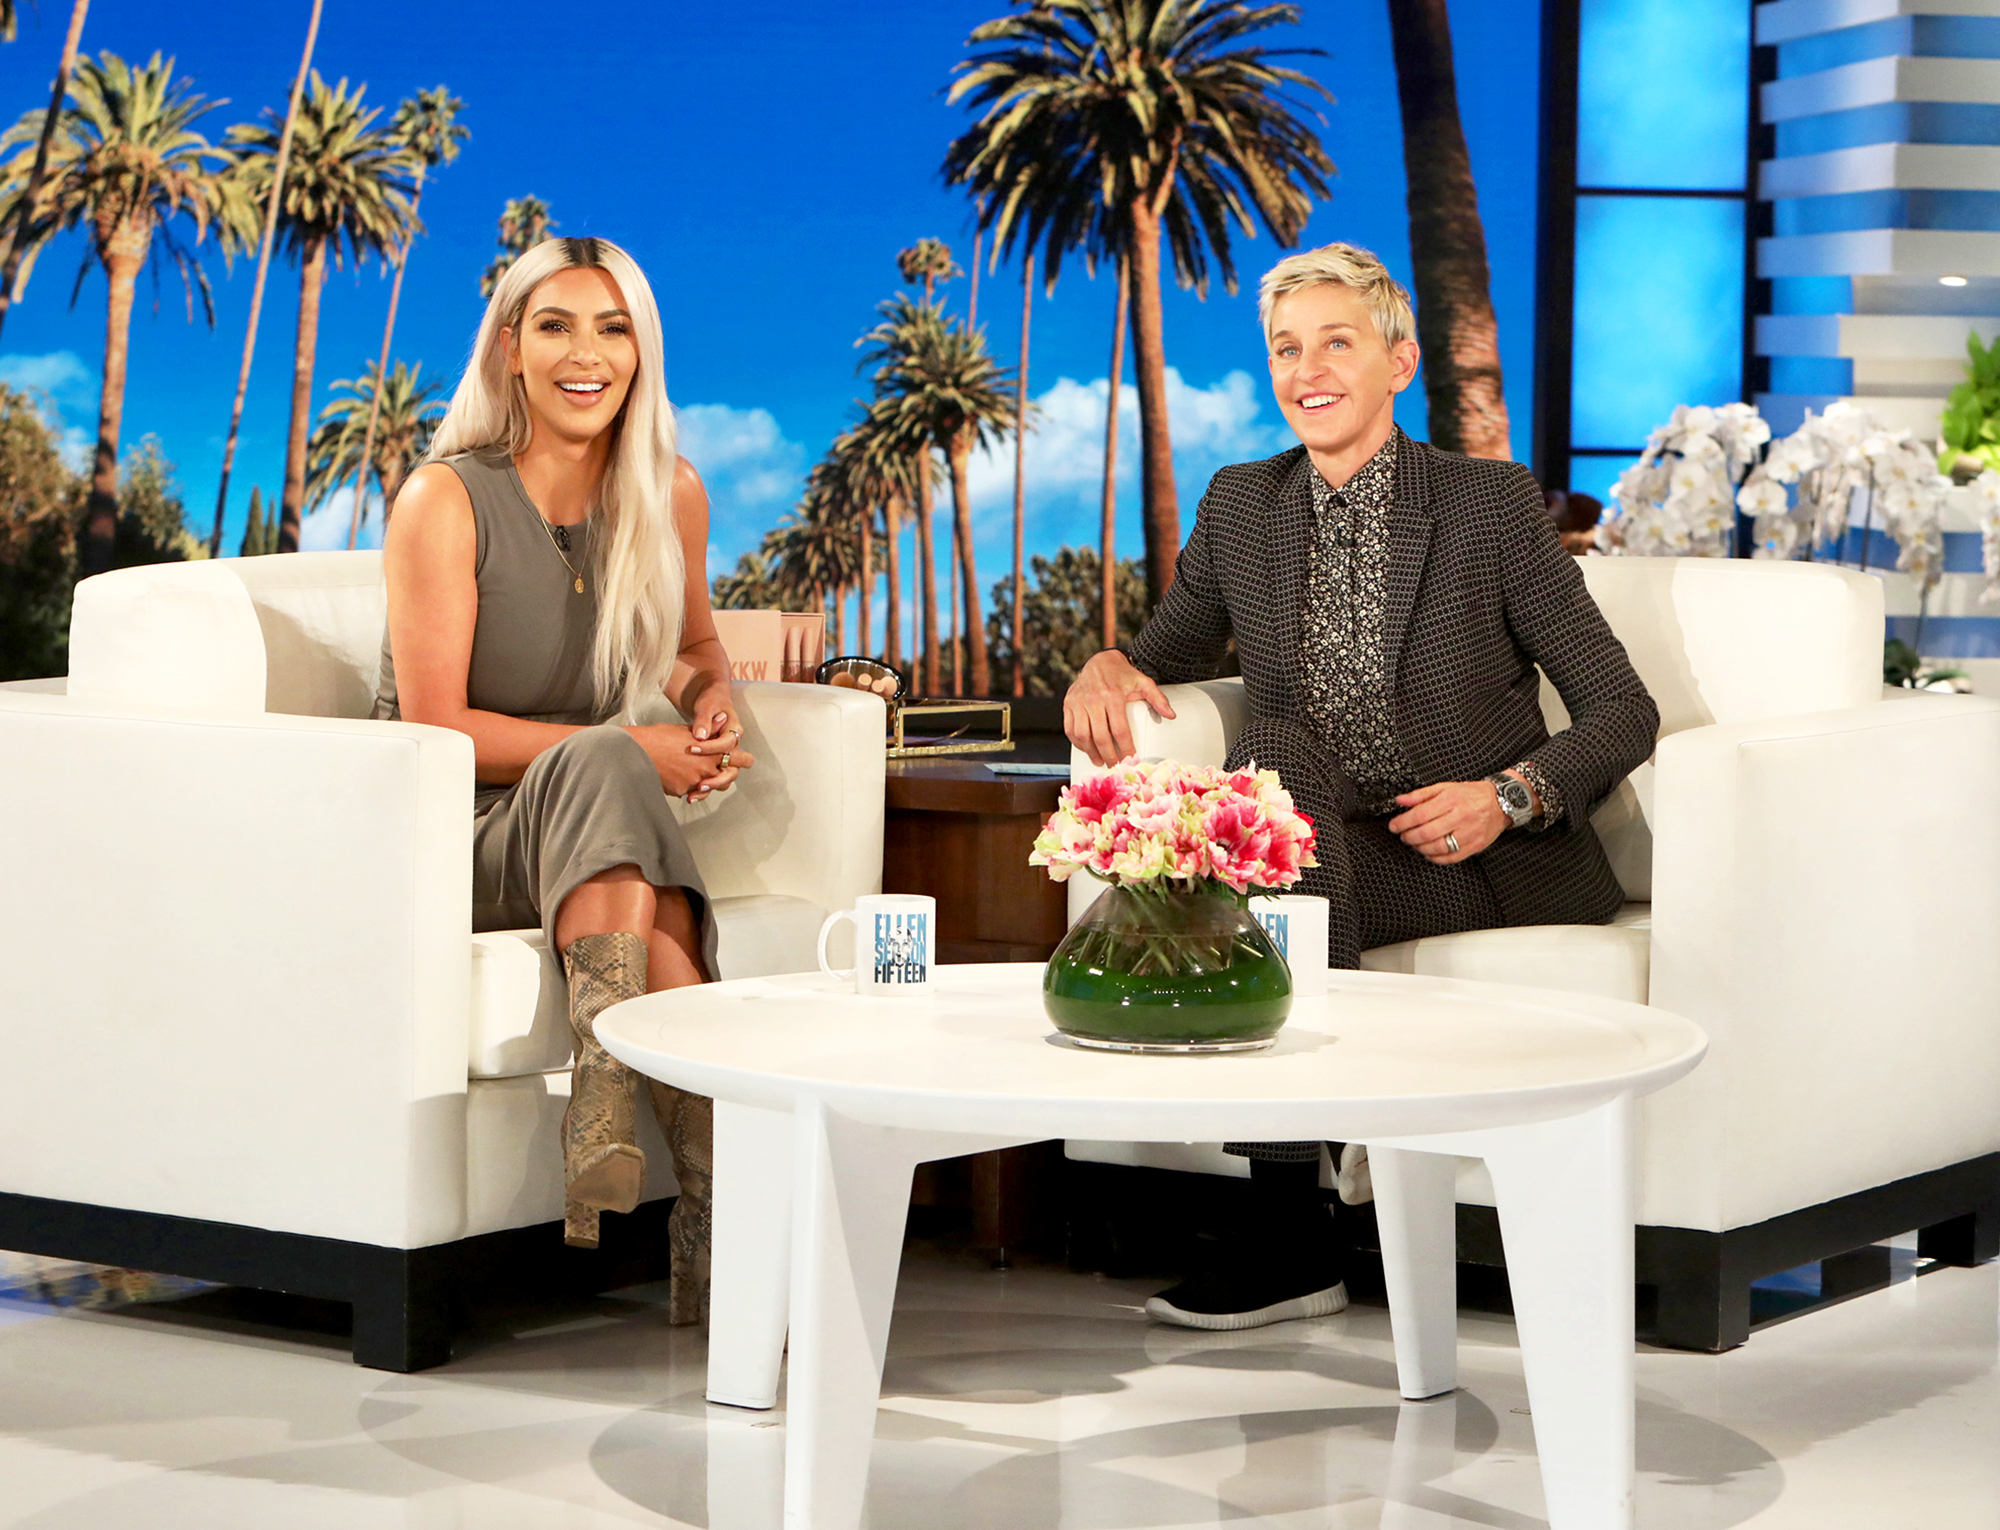 Kim Kardashian Explains Why She Didn't Invite Her Surrogate to Baby Shower